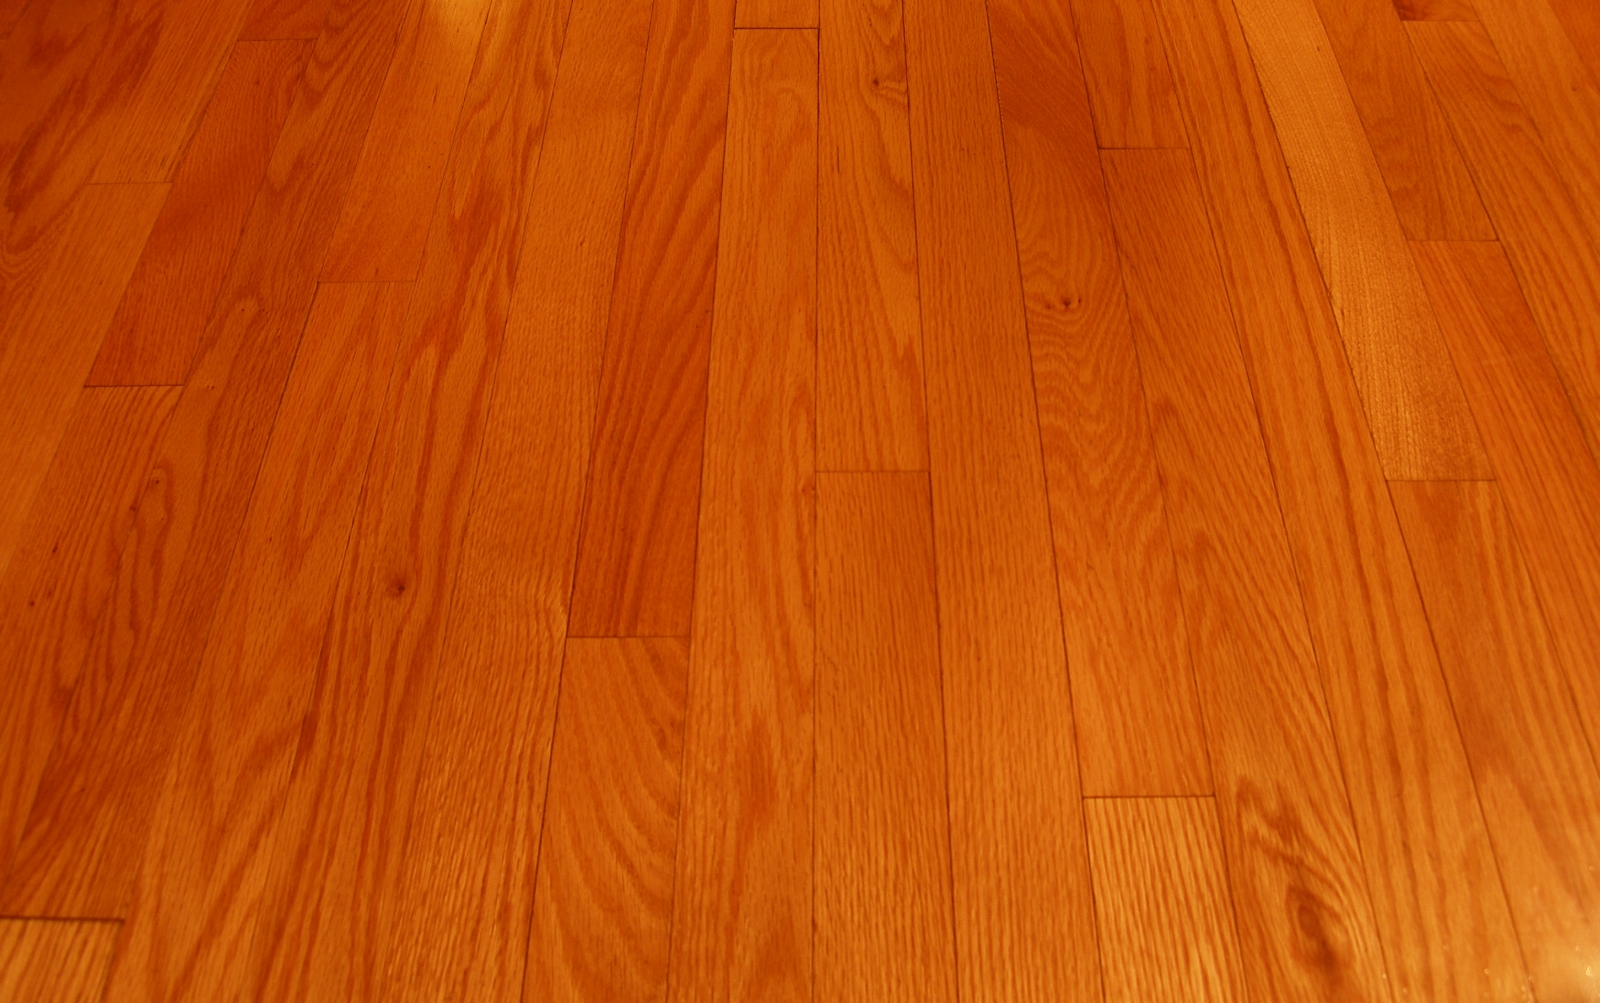 Hardwood floor pictures flooring ideas home Unfinished hardwood floors